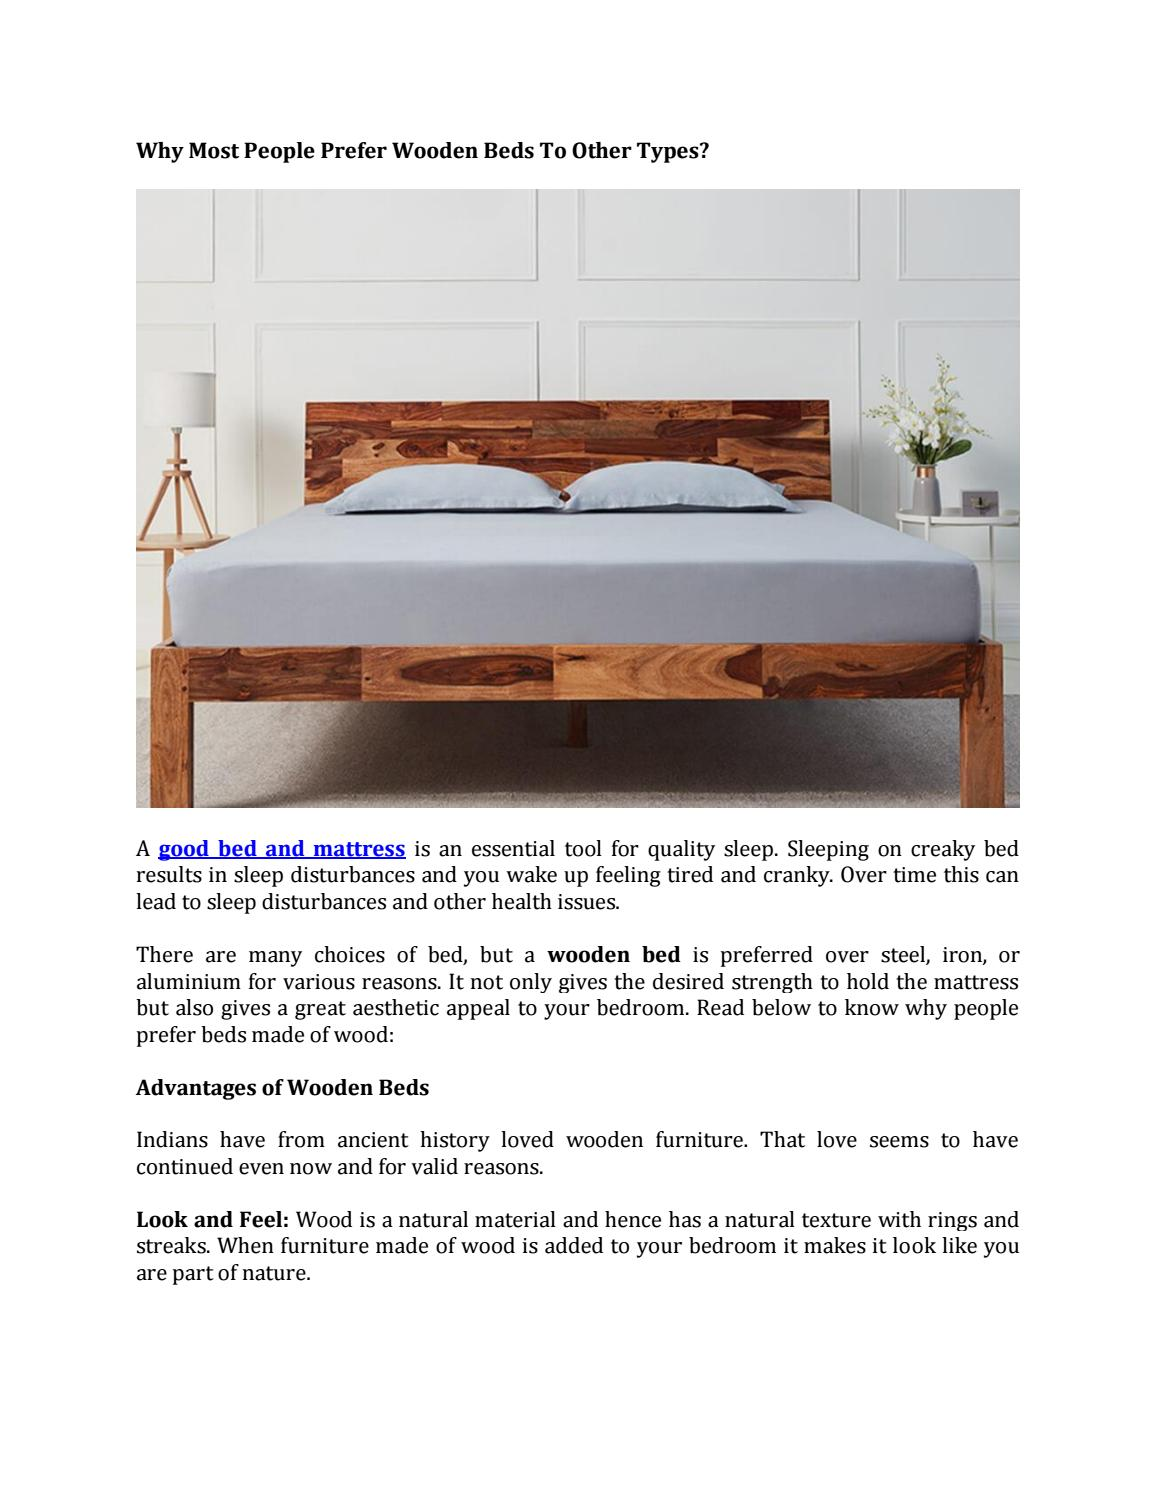 Why Most People Prefer Wooden Beds To Other Types By Wakefitmattress Issuu